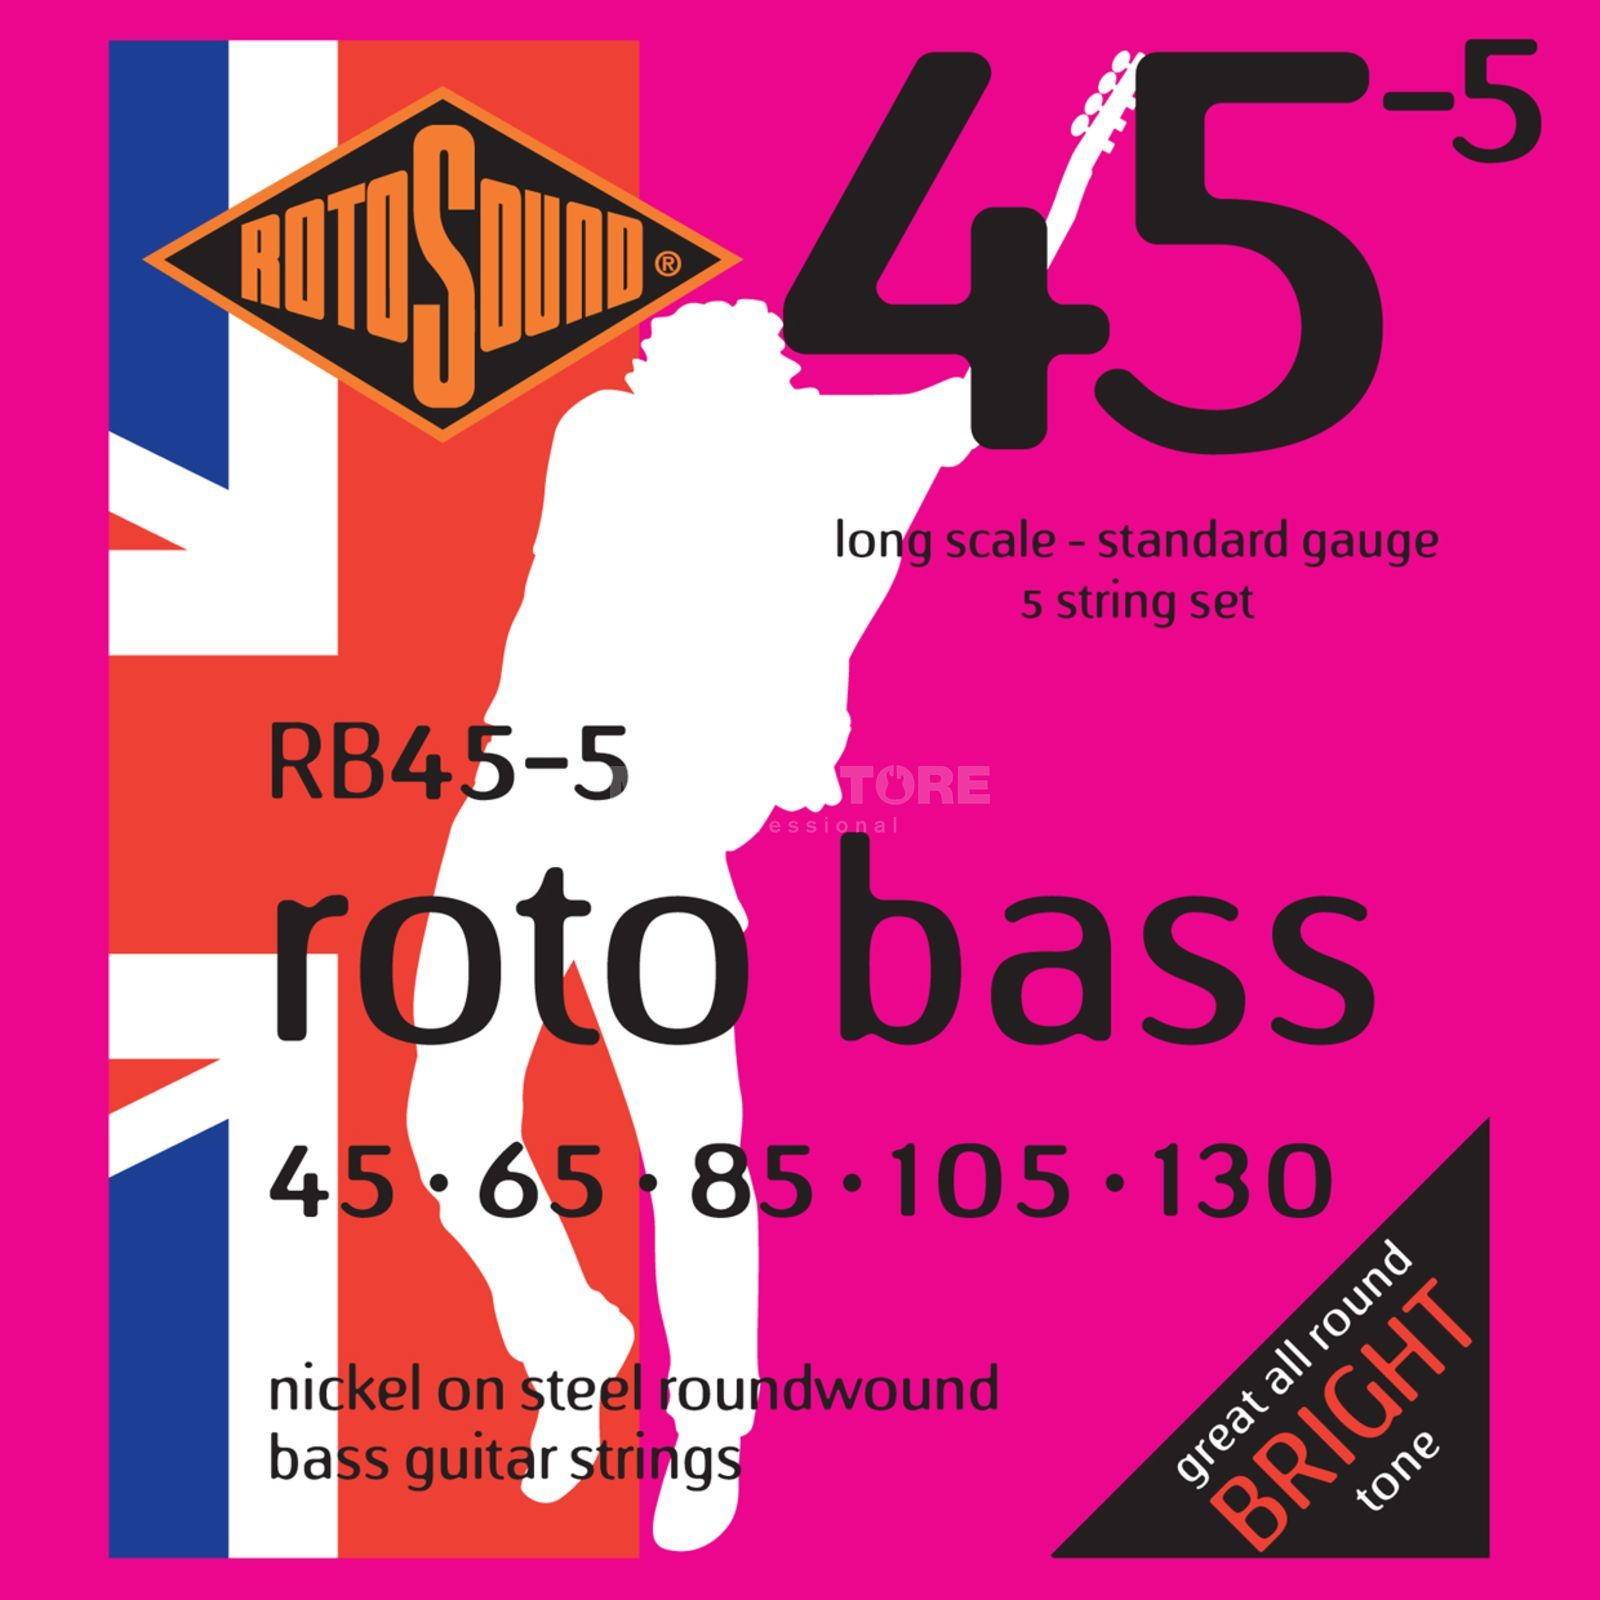 Rotosound bas snaren RB455 5er 45-130 roto bas, nikkel on Steel Productafbeelding